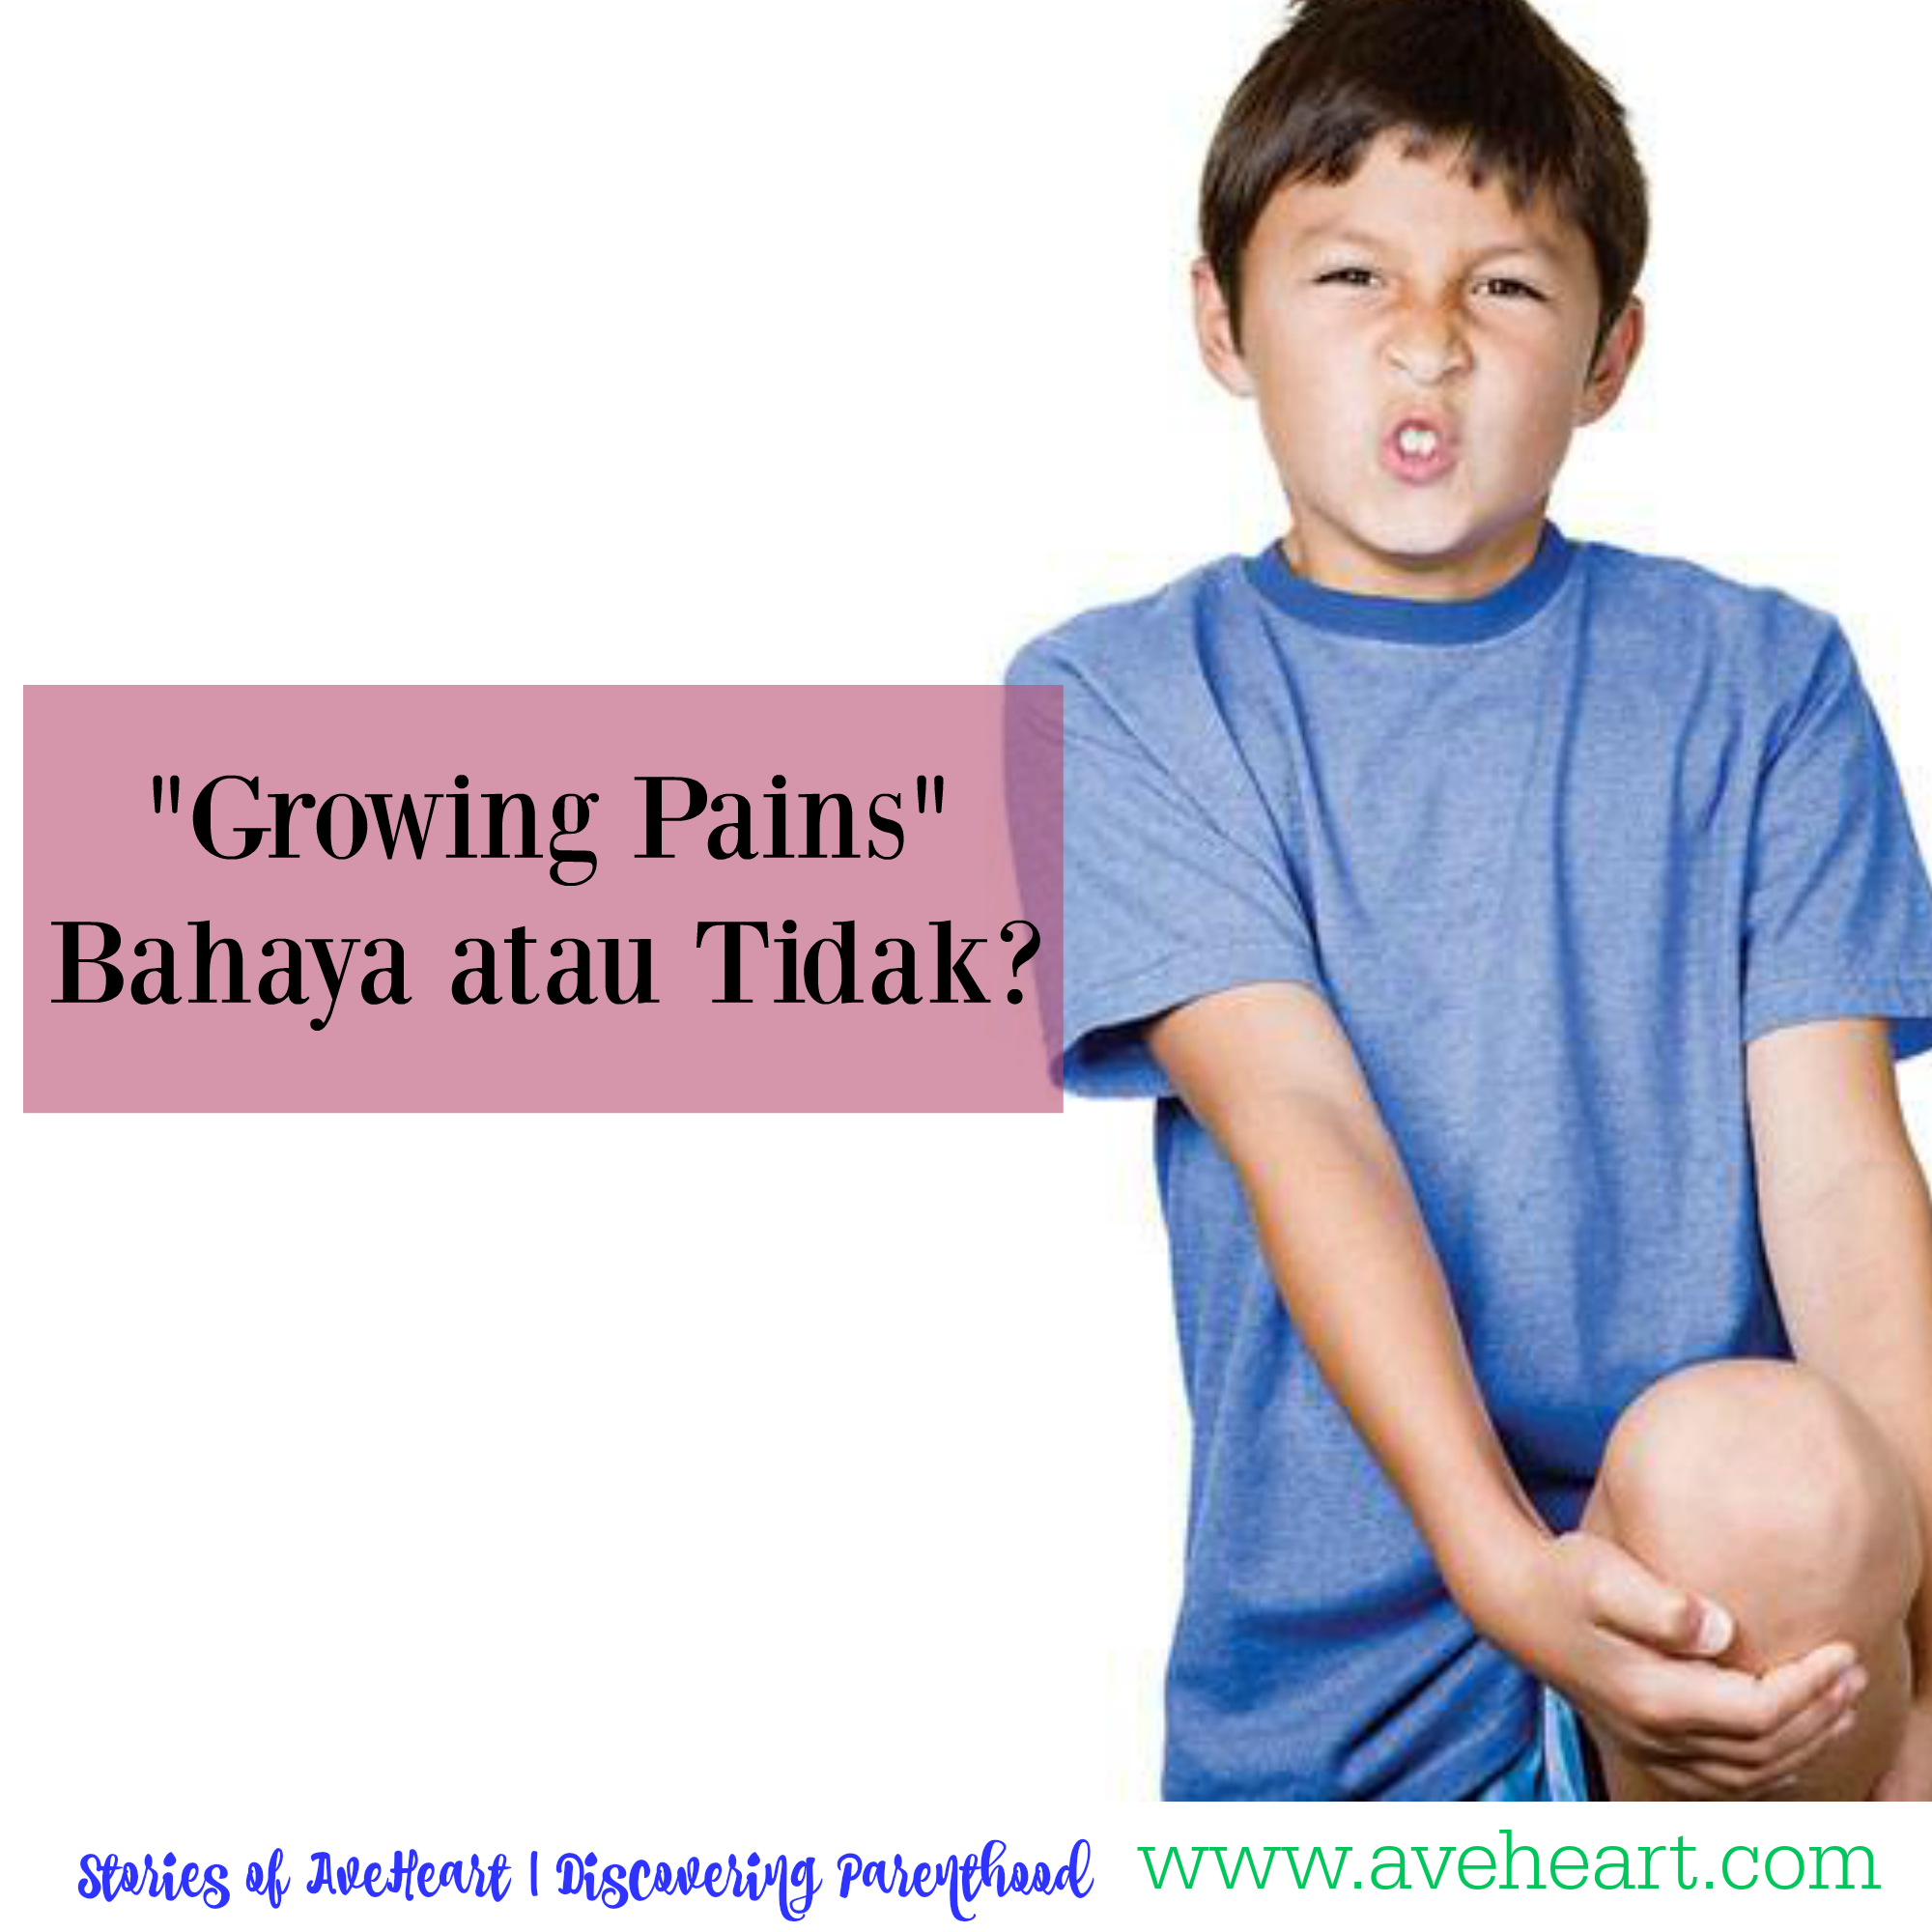 Bahayakah Growing Pains